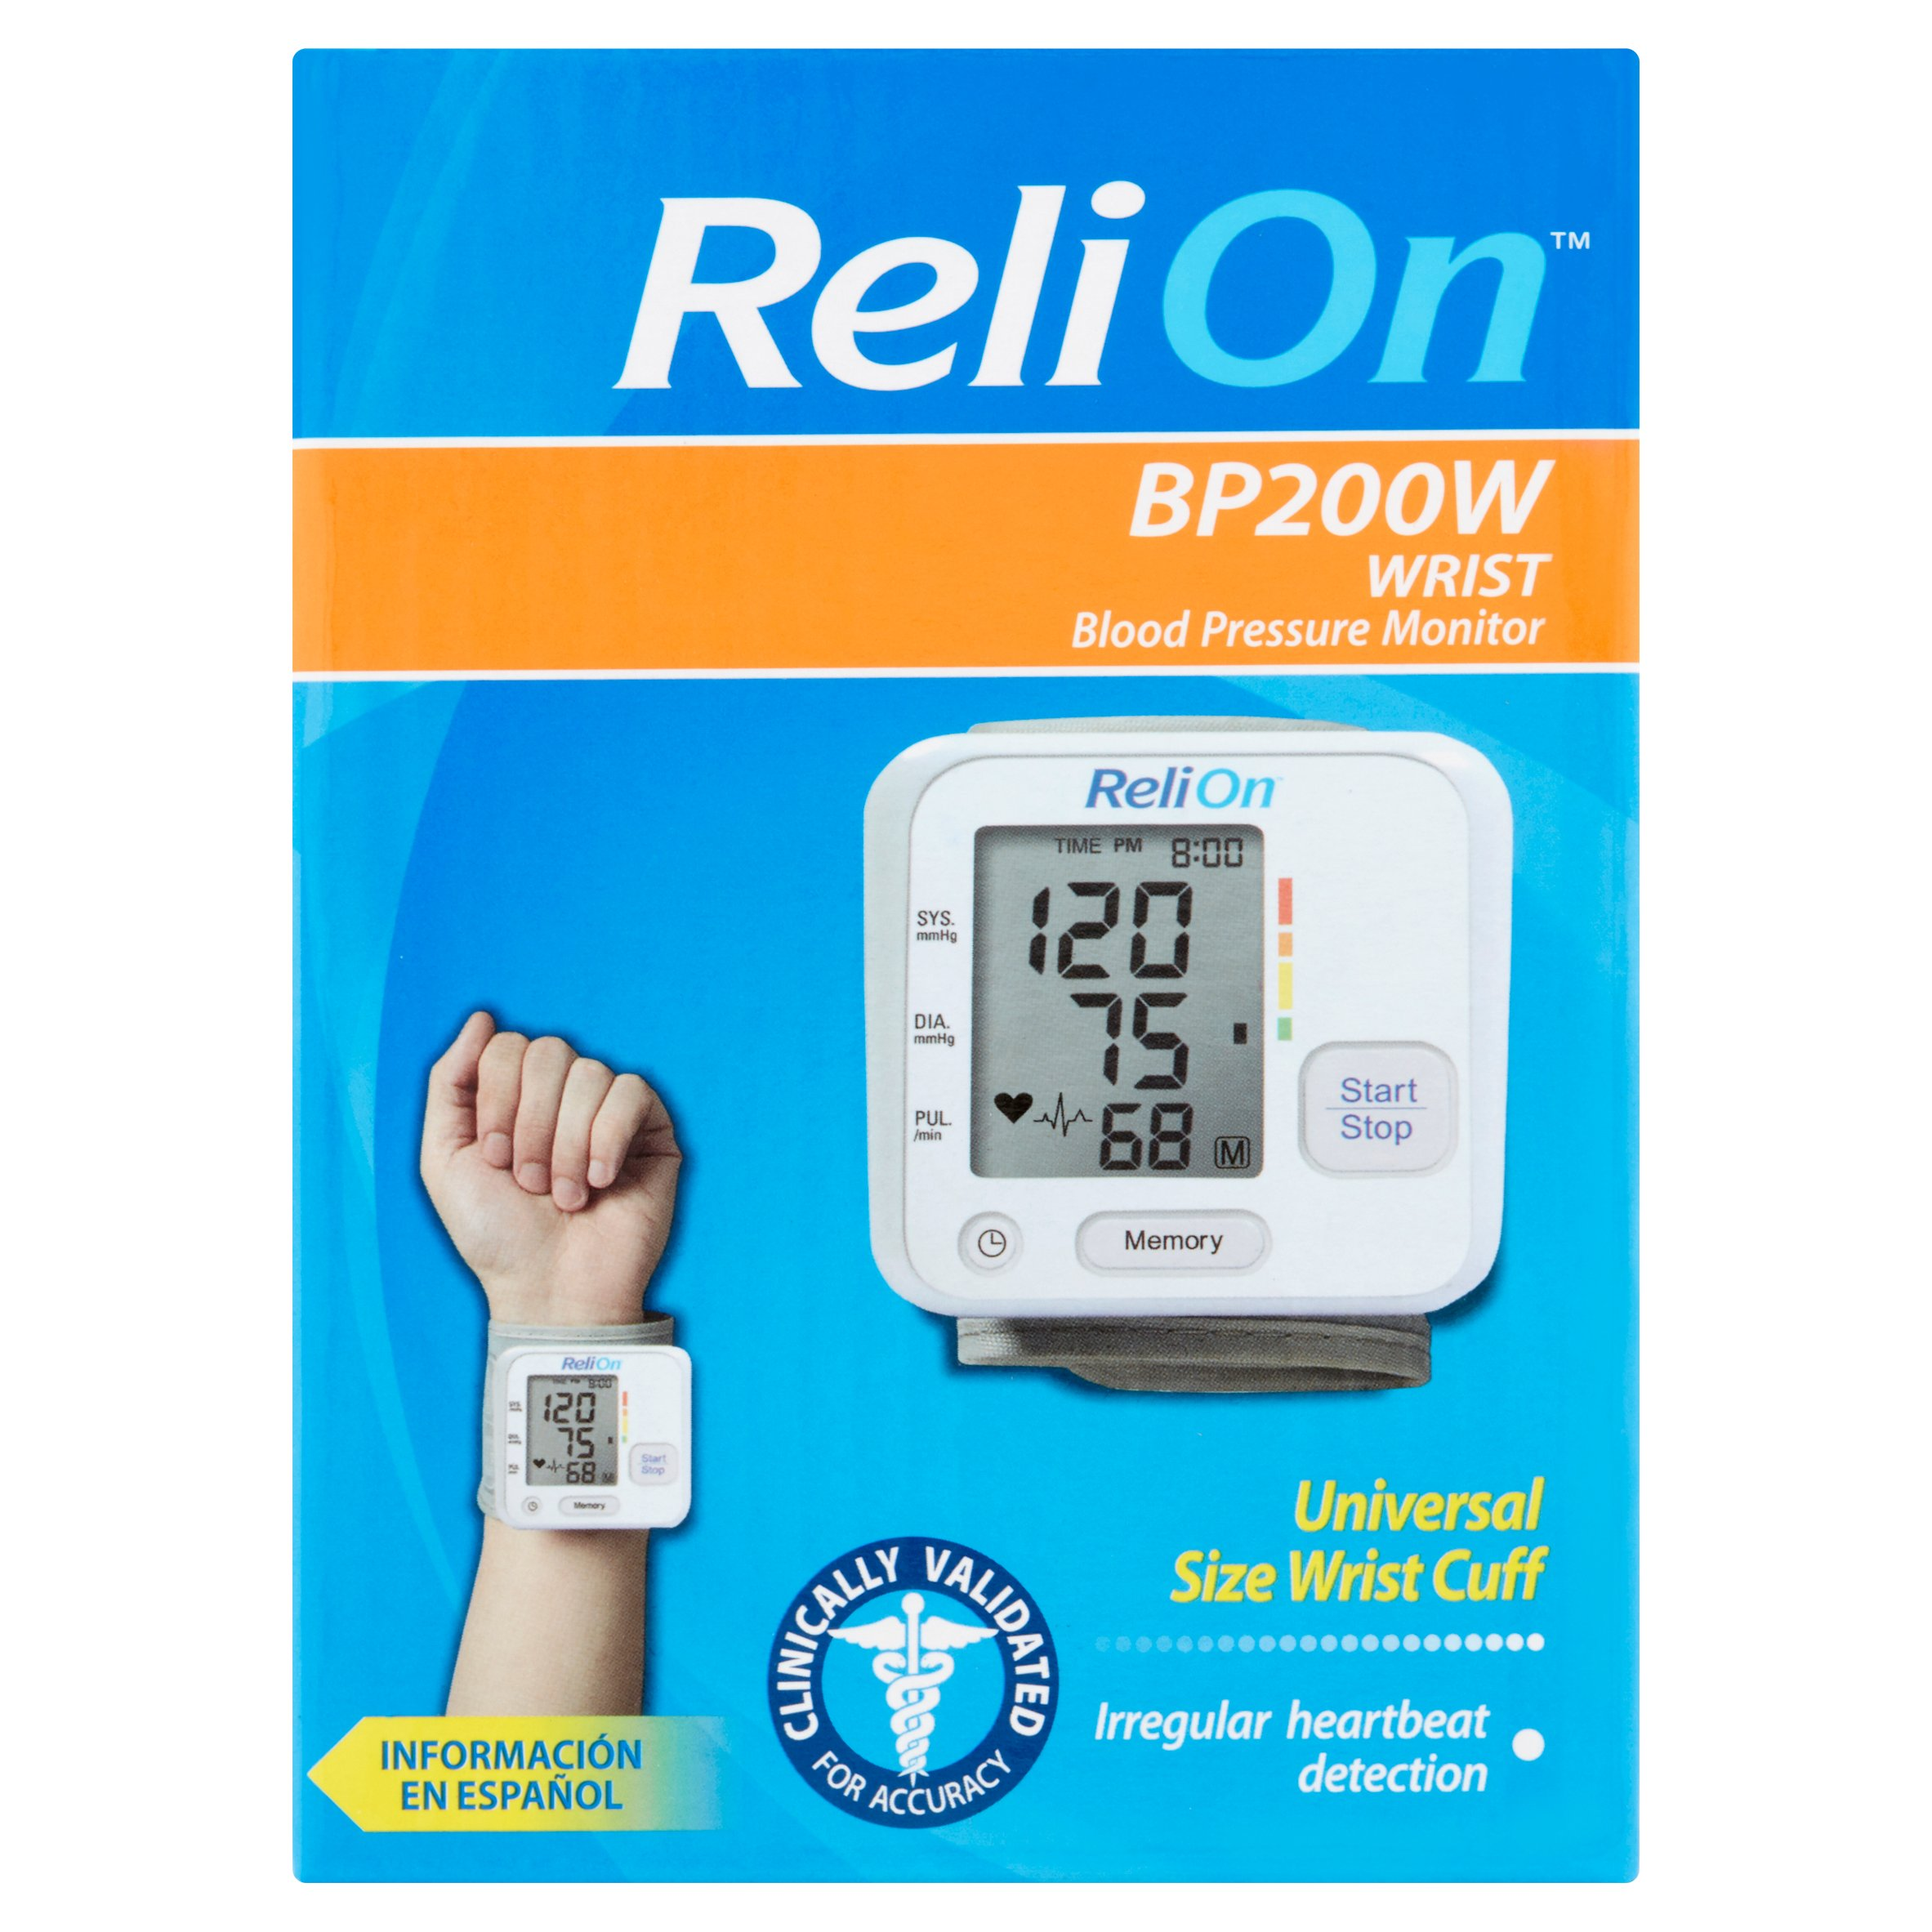 ReliOn Wrist Blood Pressure Monitor, BP200W